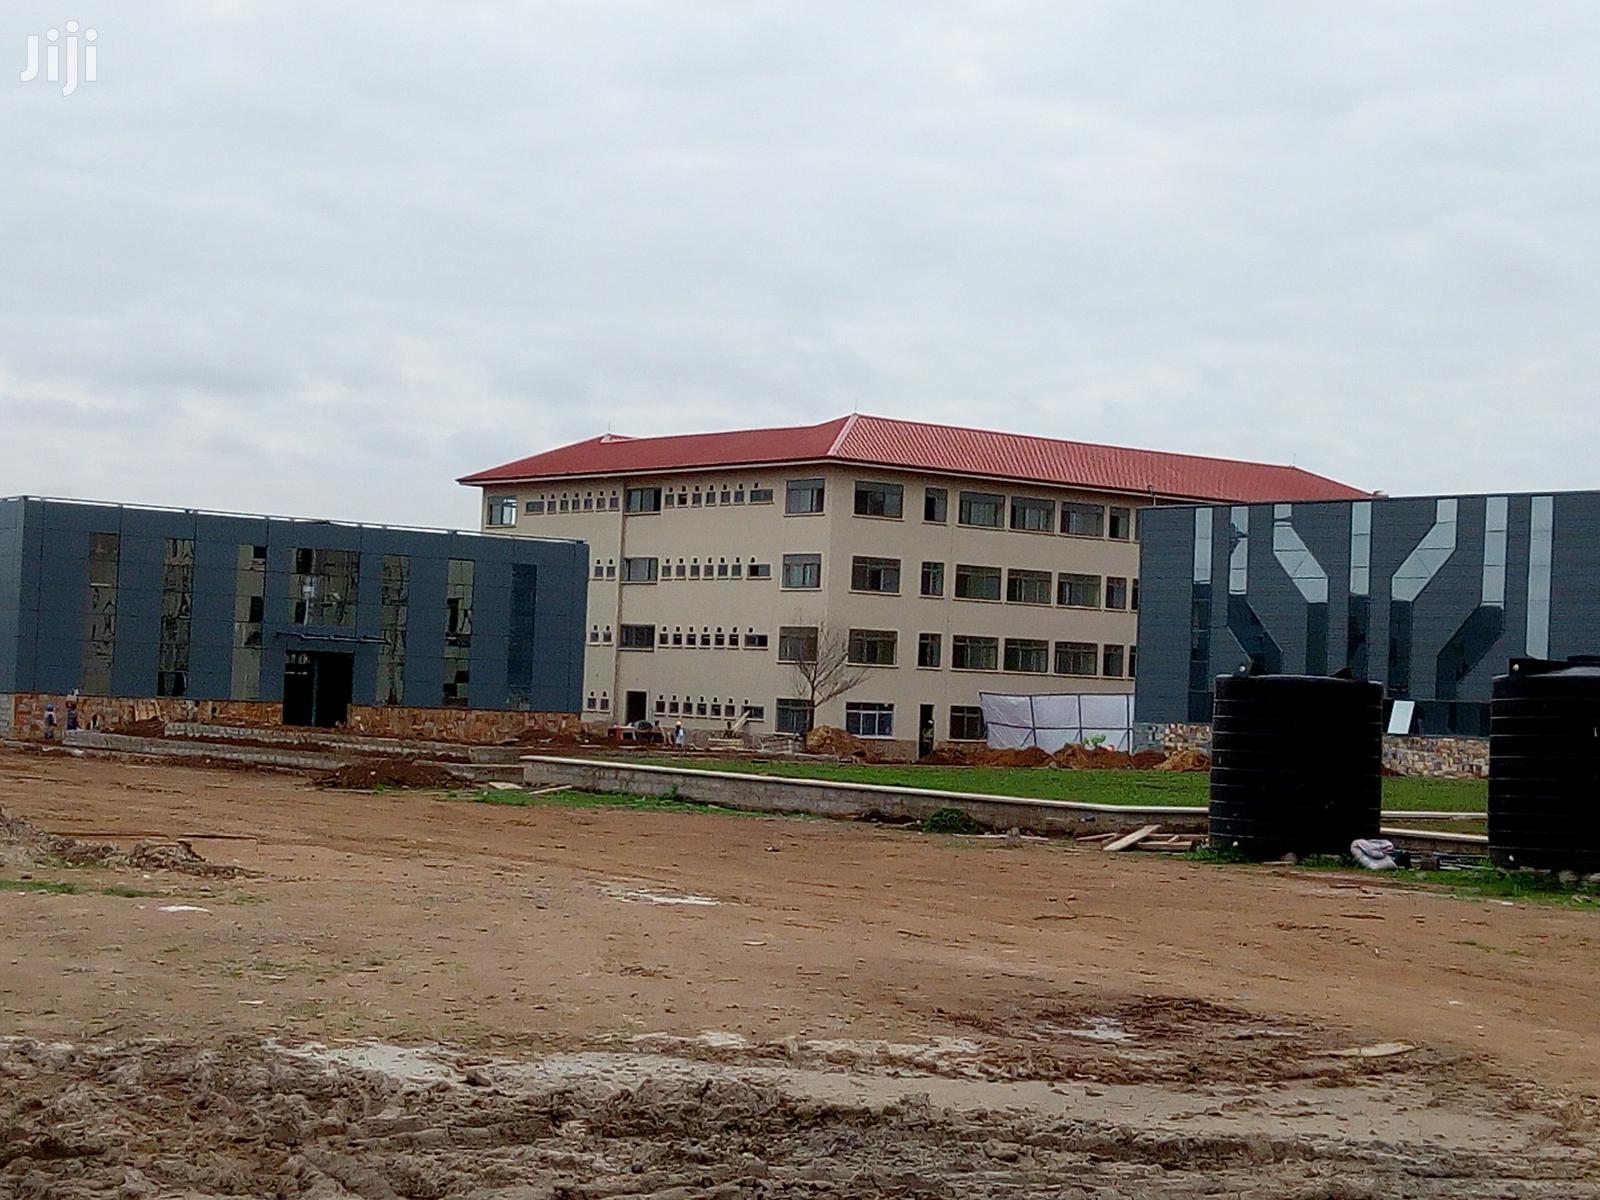 3 Bedrooms Apartment At Adenta For Rent | Houses & Apartments For Rent for sale in Atebubu-Amantin, Brong Ahafo, Ghana